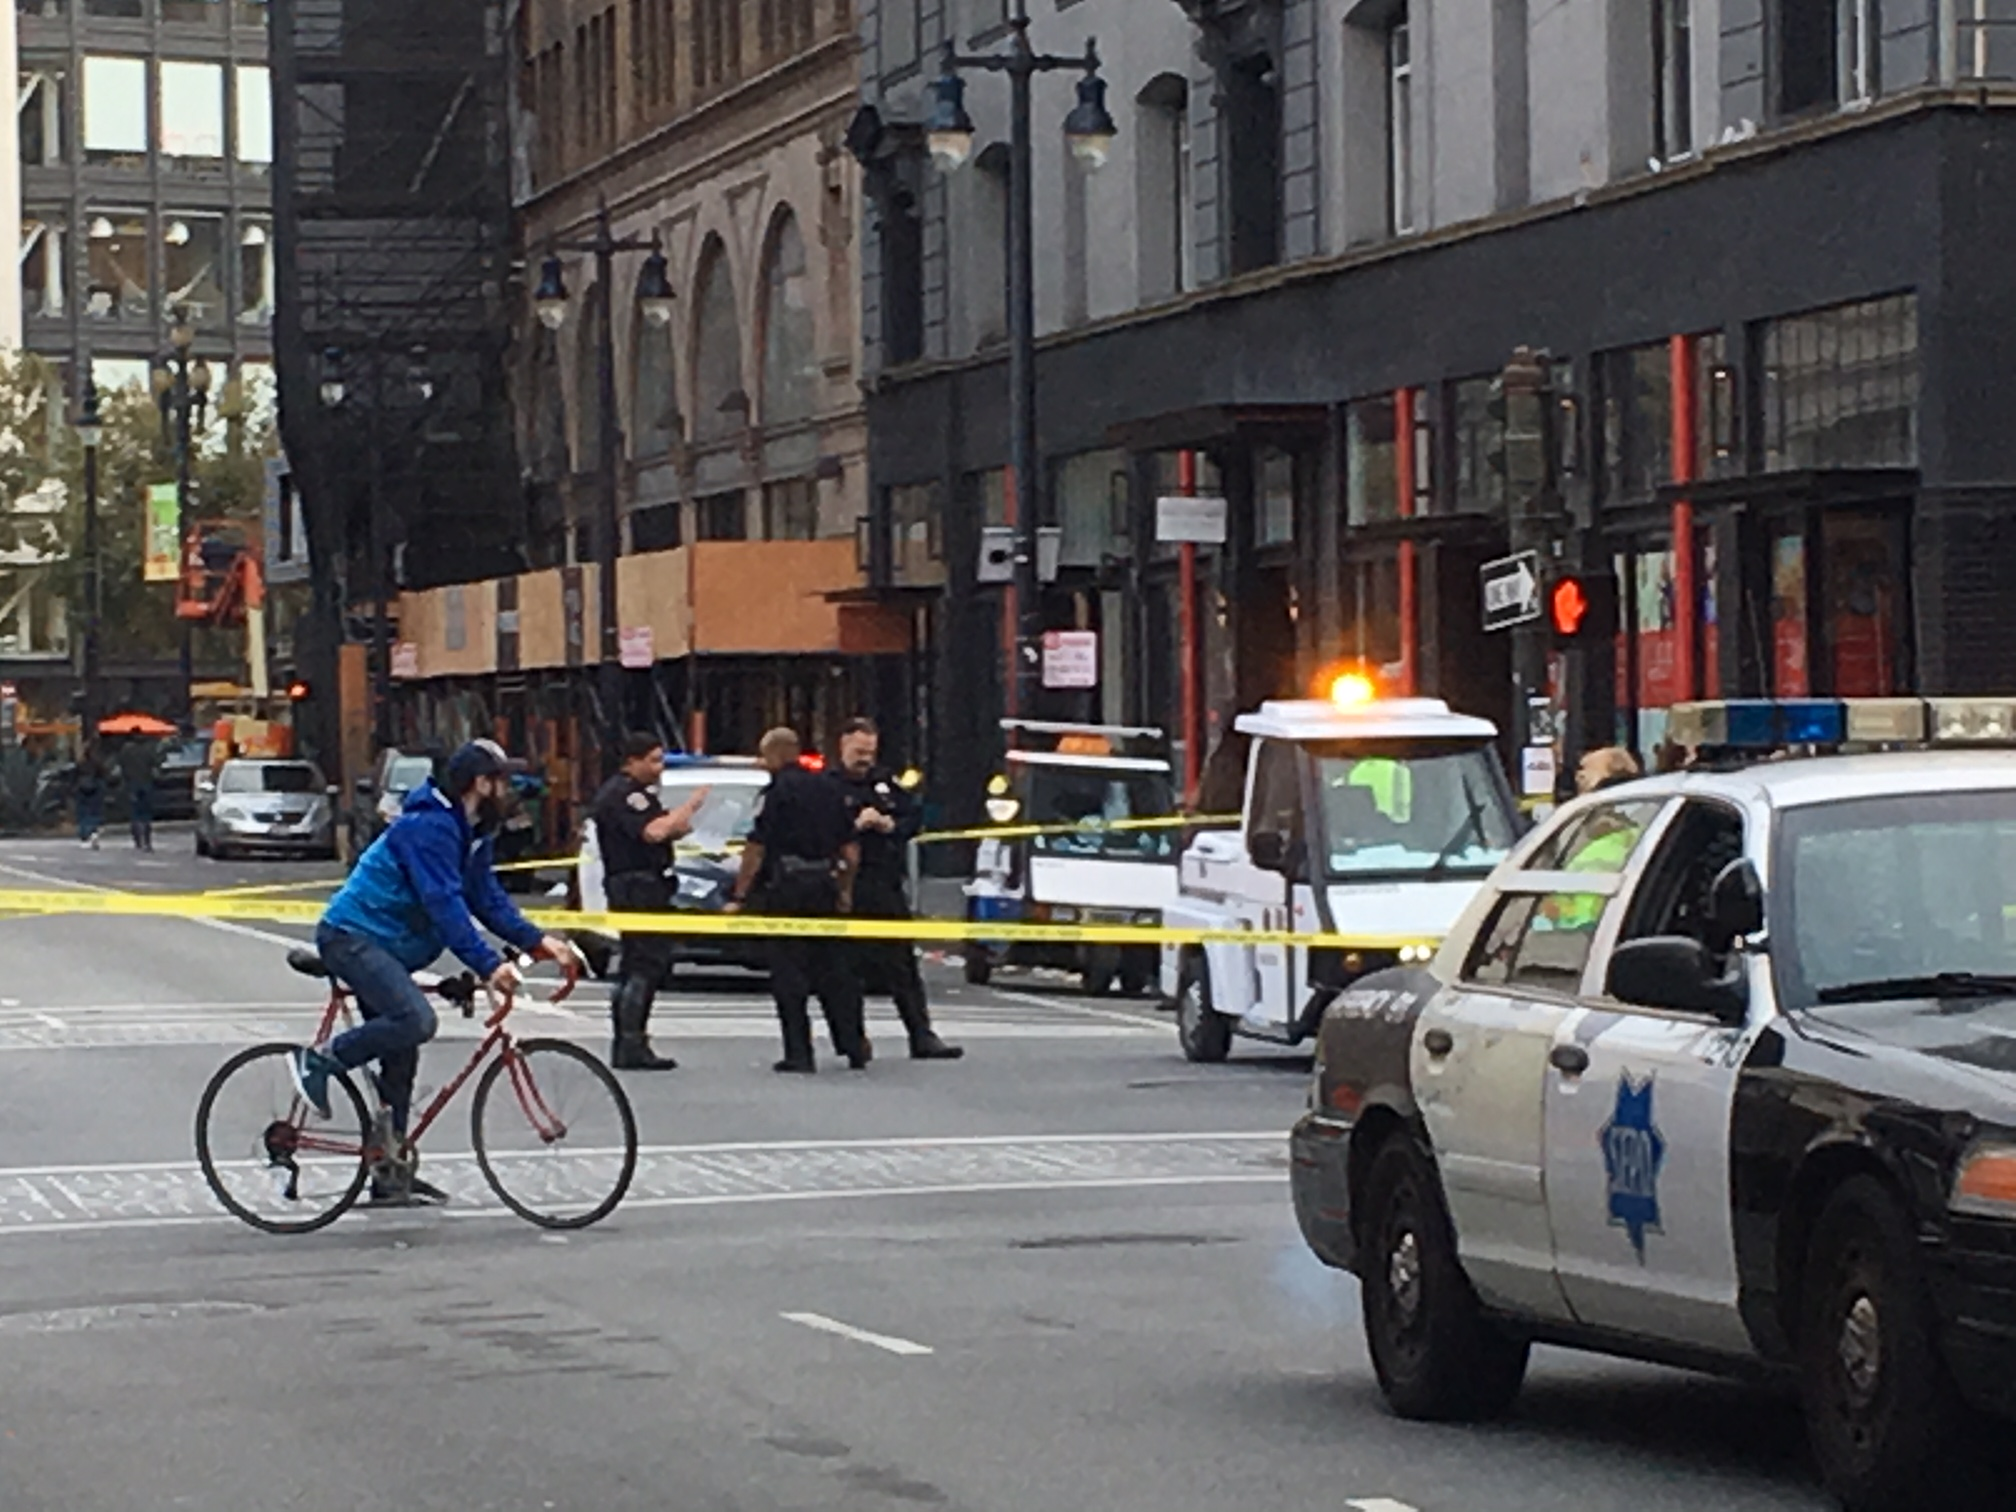 Bicyclist killed in Tenderloin collision identified as 66